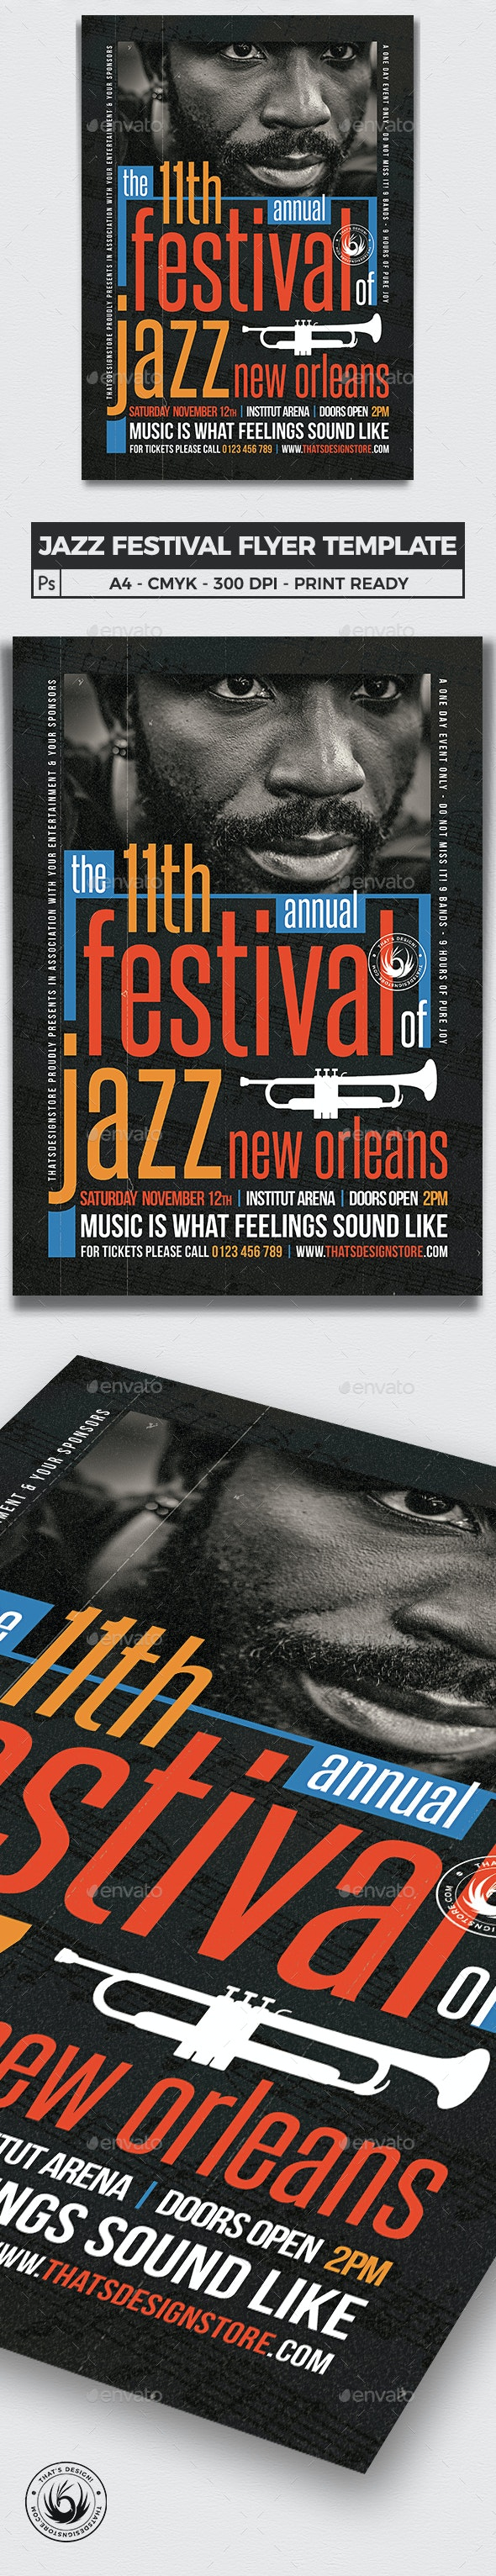 Jazz Festival Flyer Template V10 - Concerts Events